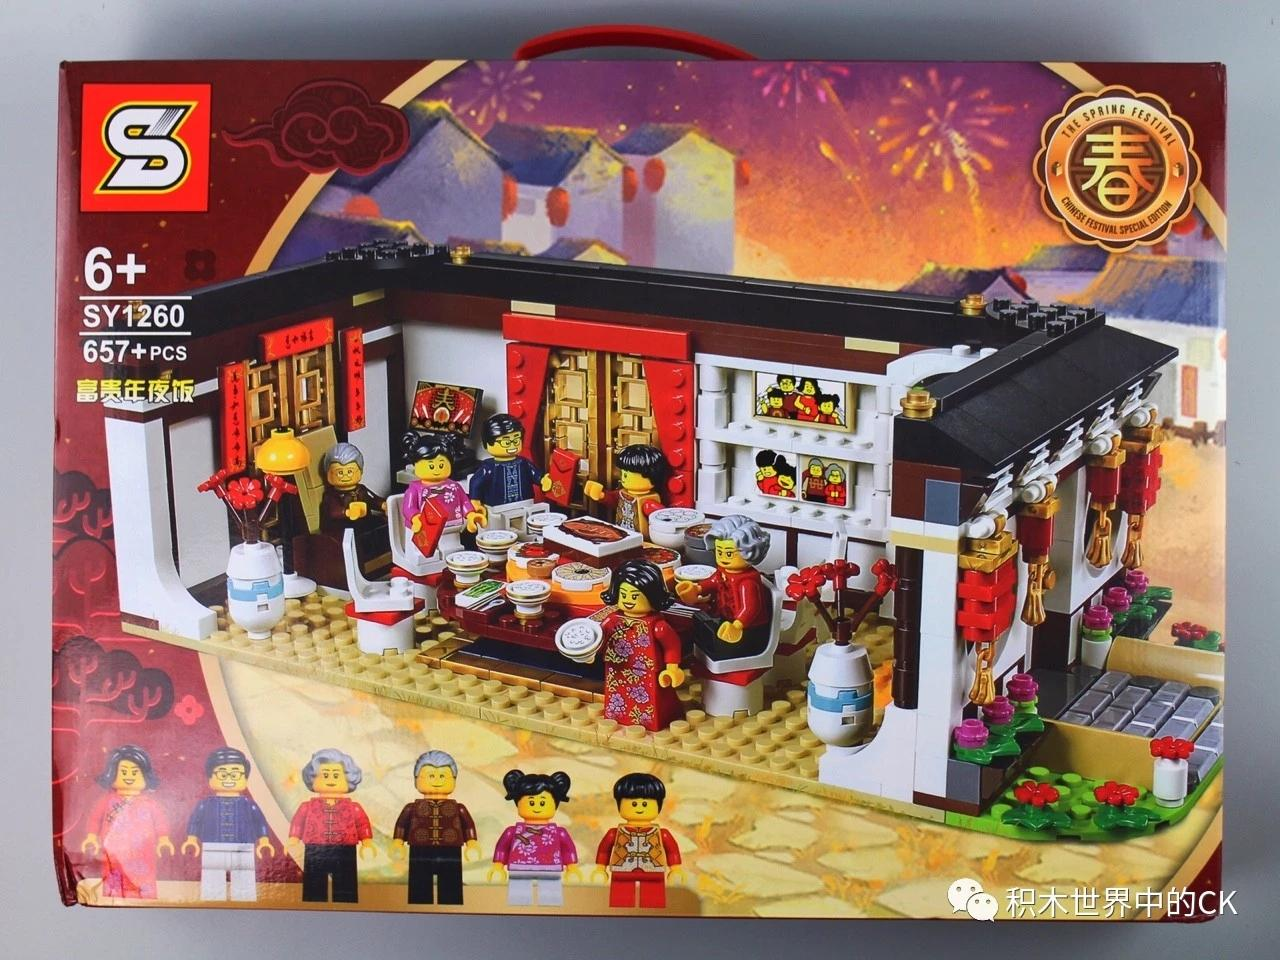 Review Of Sembo Sy1260 Bootleg Of Chinese New Year S Eve Dinner Lego 80101 Customize Minifigures Intelligence